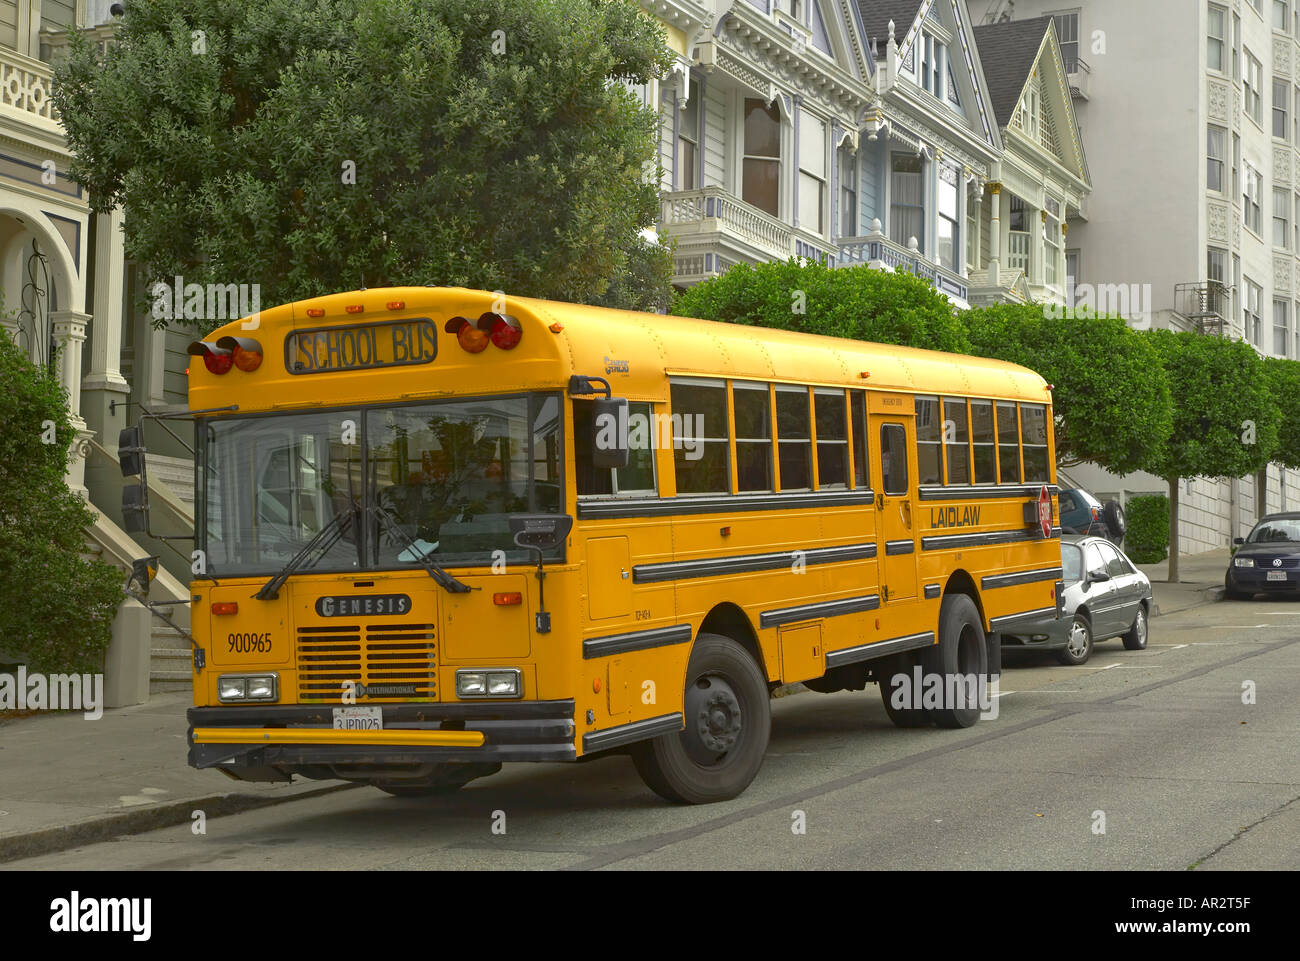 alamo mobile homes with Stock Photo School Bus Parked At Alamo Square San Francisco California Usa 5197918 on Clayton Homes H stead Nc furthermore Stock Photo School Bus Parked At Alamo Square San Francisco California Usa 5197918 in addition 3670594500 besides 8133578912 additionally California Koa To Begin Selling Deluxe Cabins.